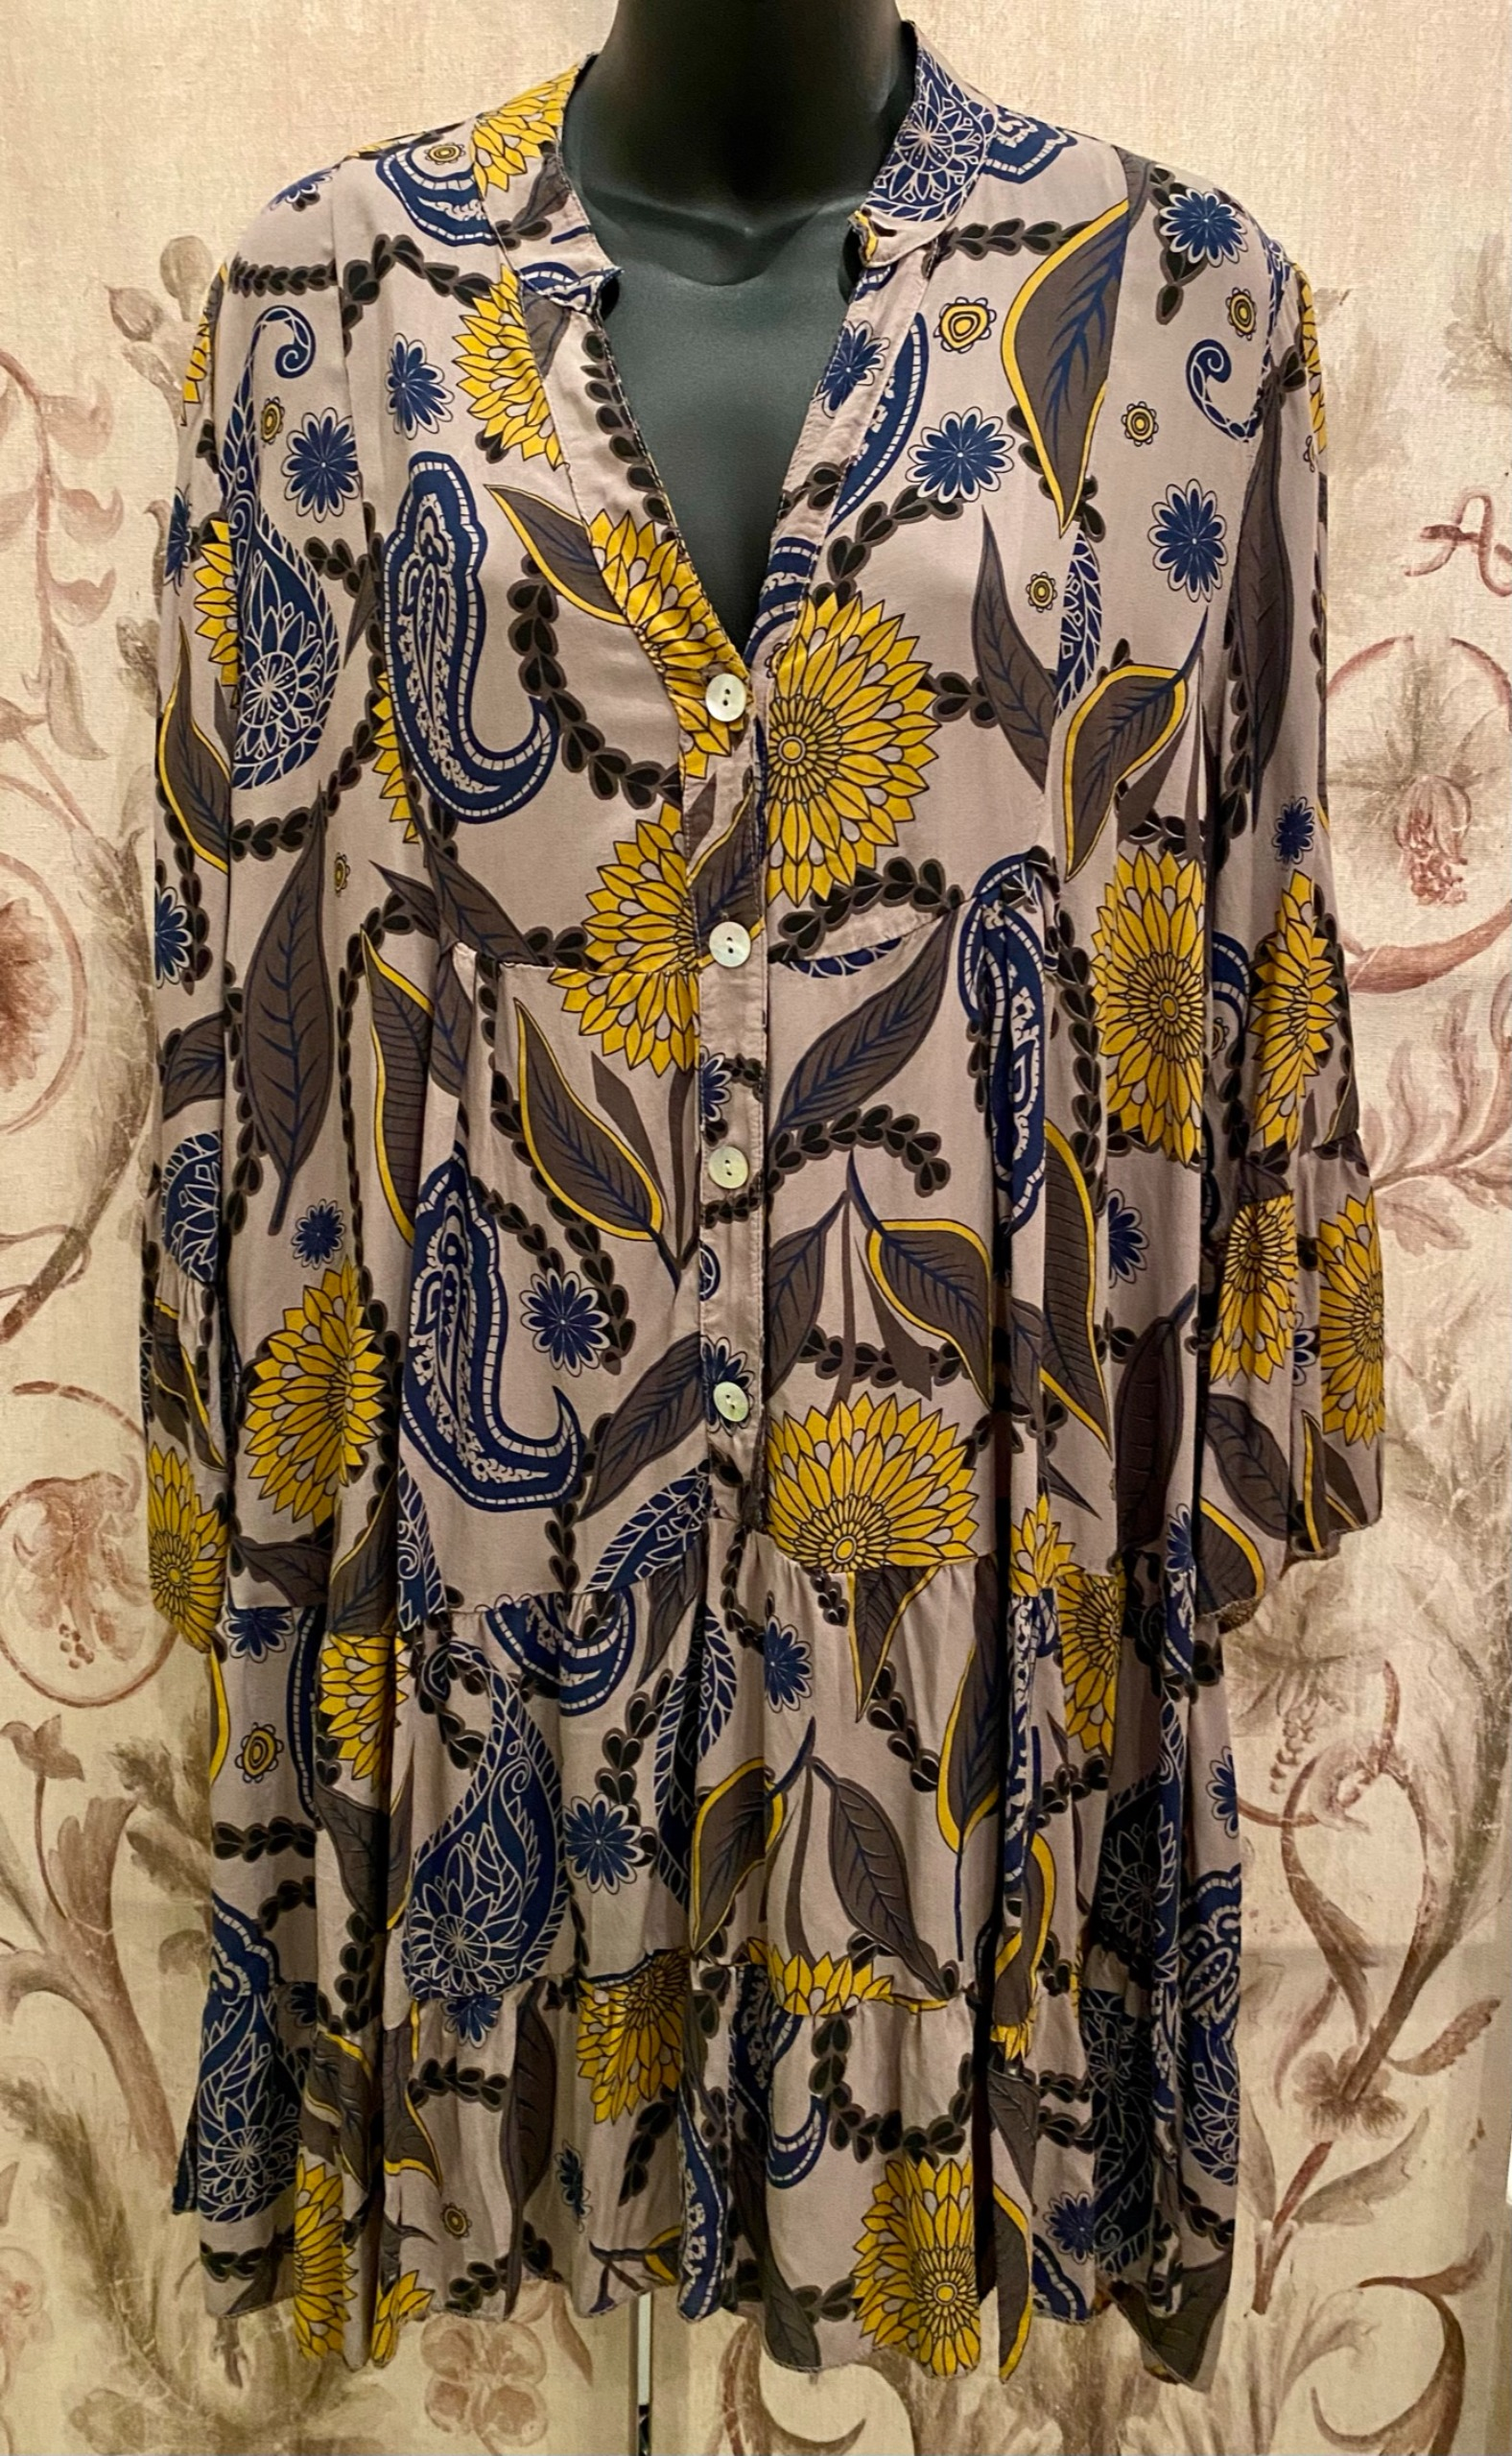 Sunflower print tunic dress